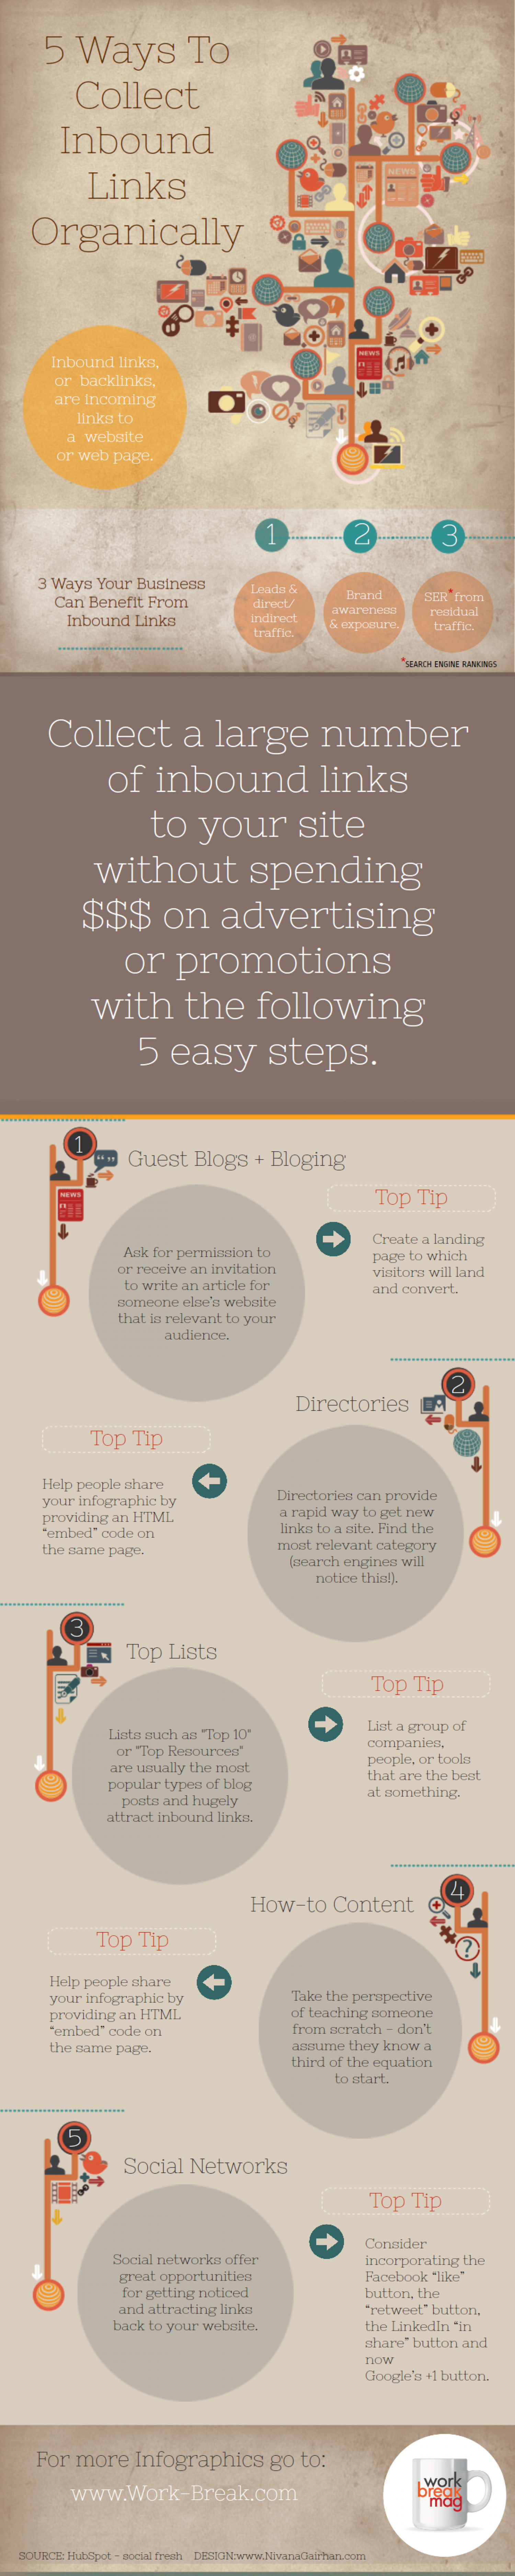 5 Ways To Collect Inbound Links Organically Infographic